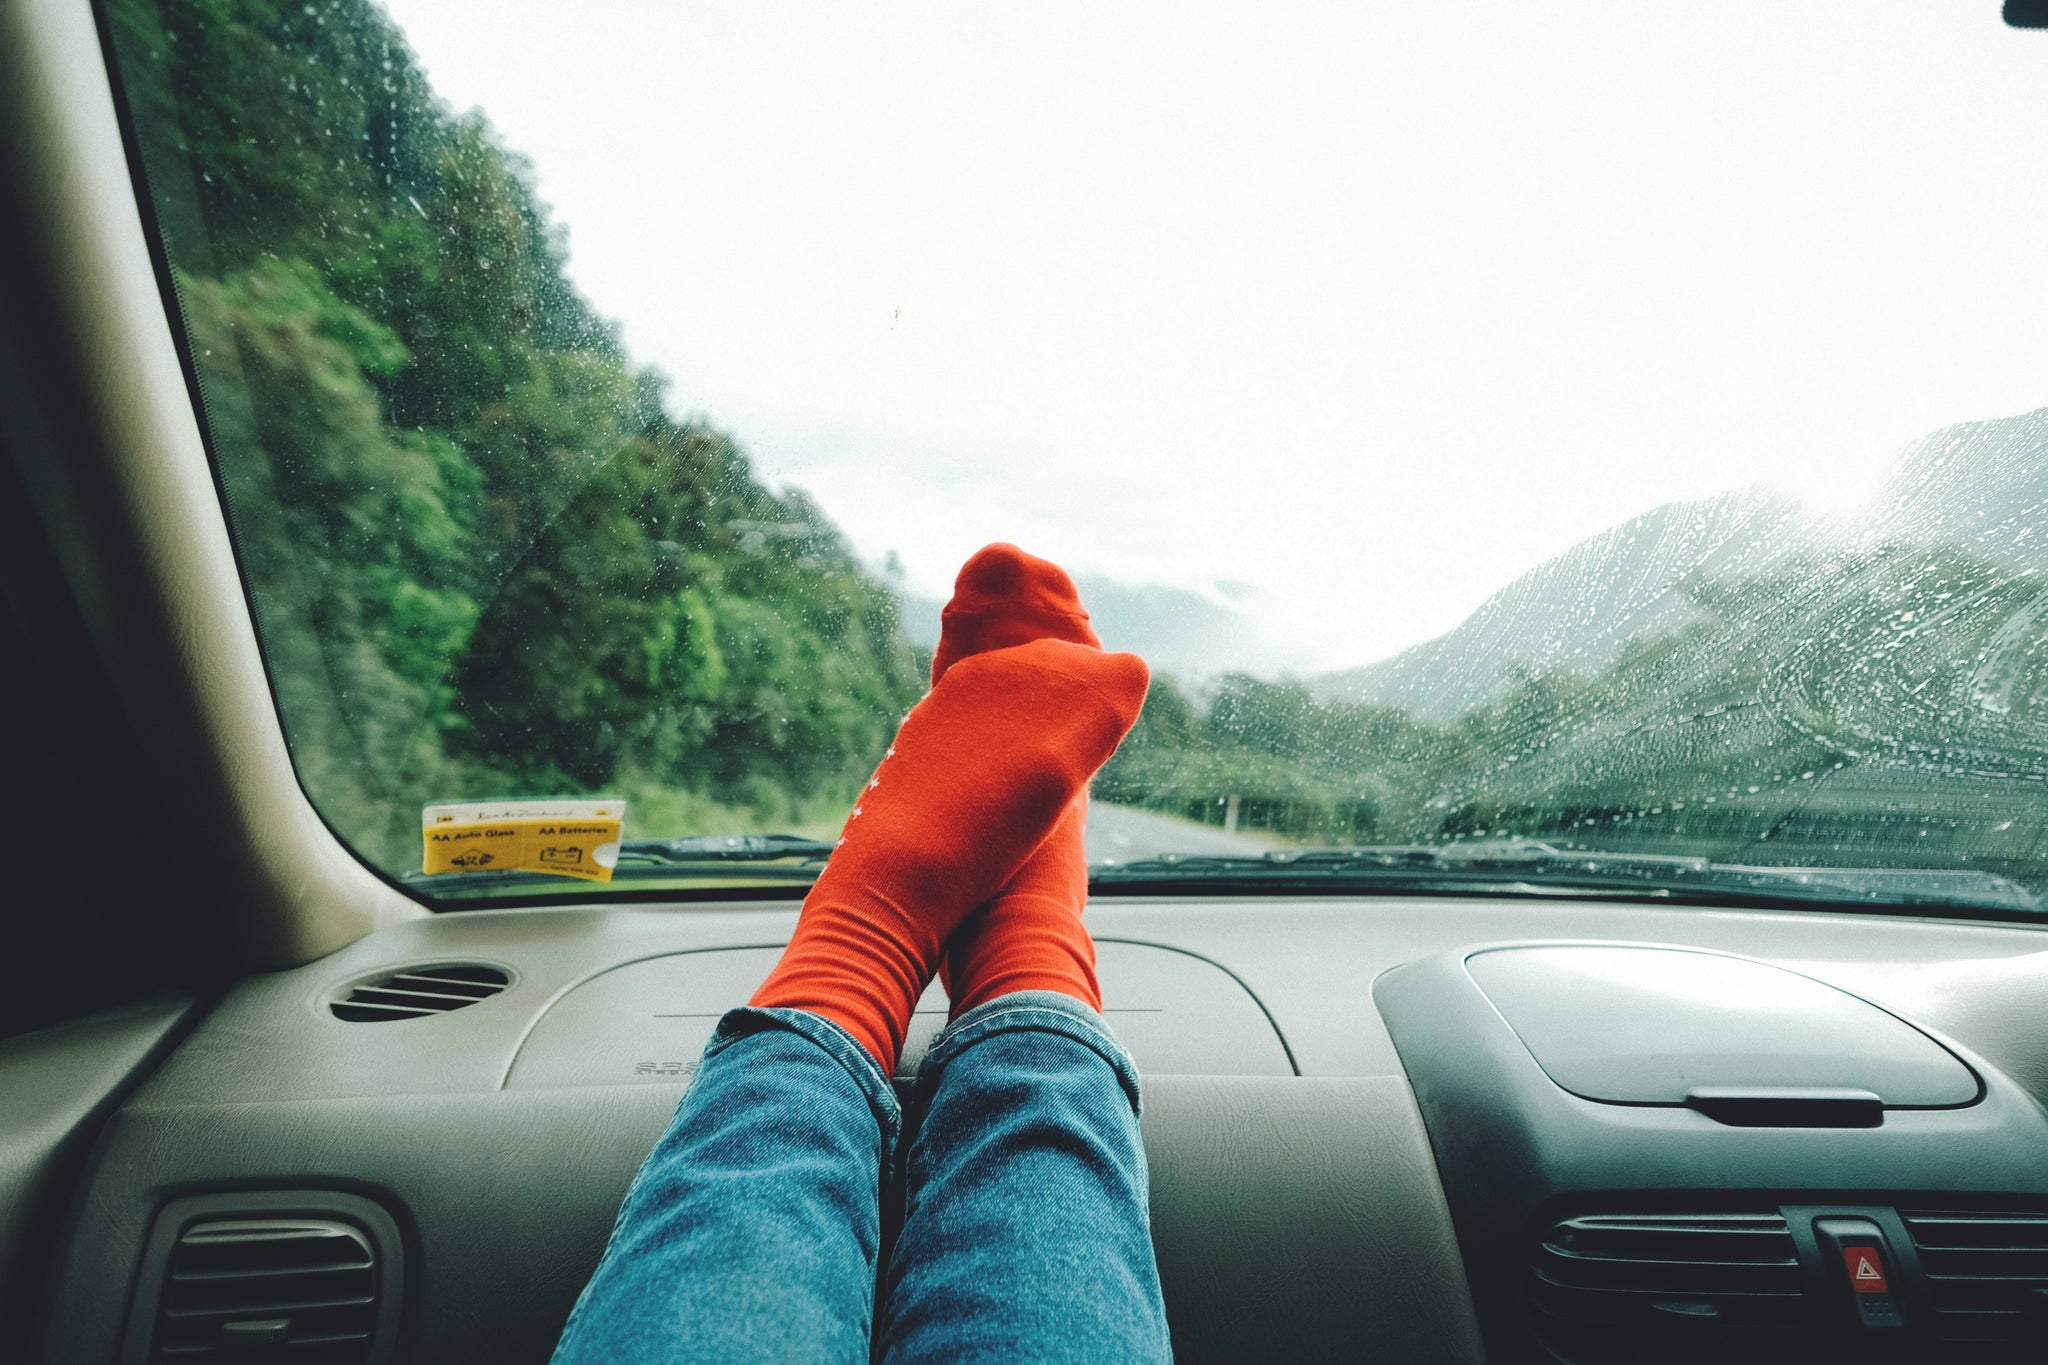 How to Take the Perfect Road Trip